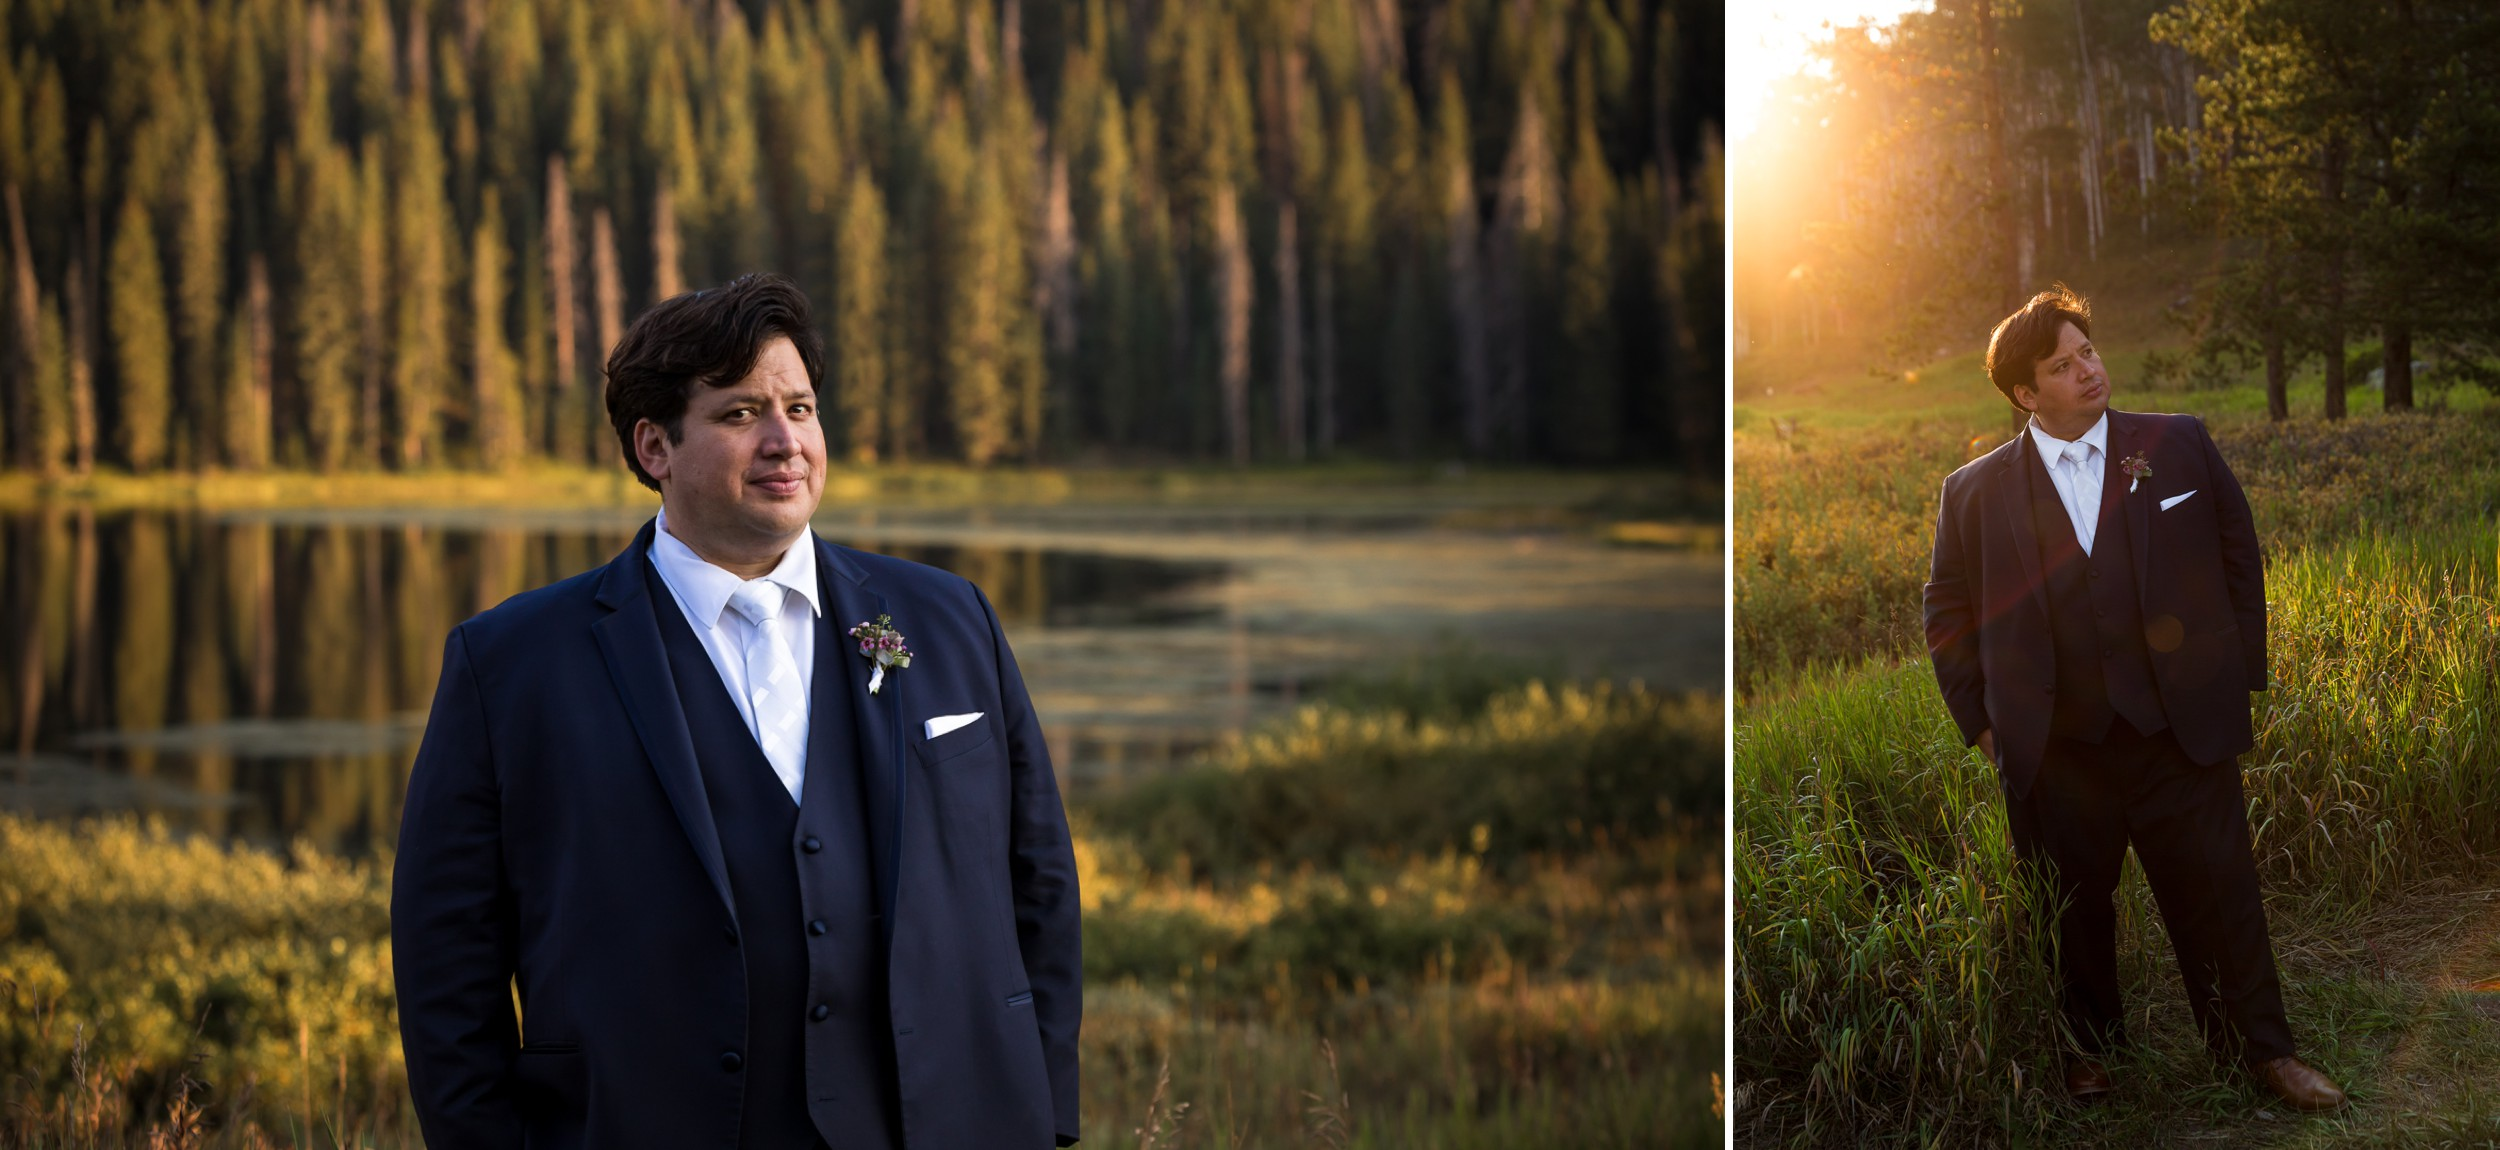 Piney_River_Ranch_Vail_Colorado_Wedding_Kristopher_Lindsay_Photography 19.jpg